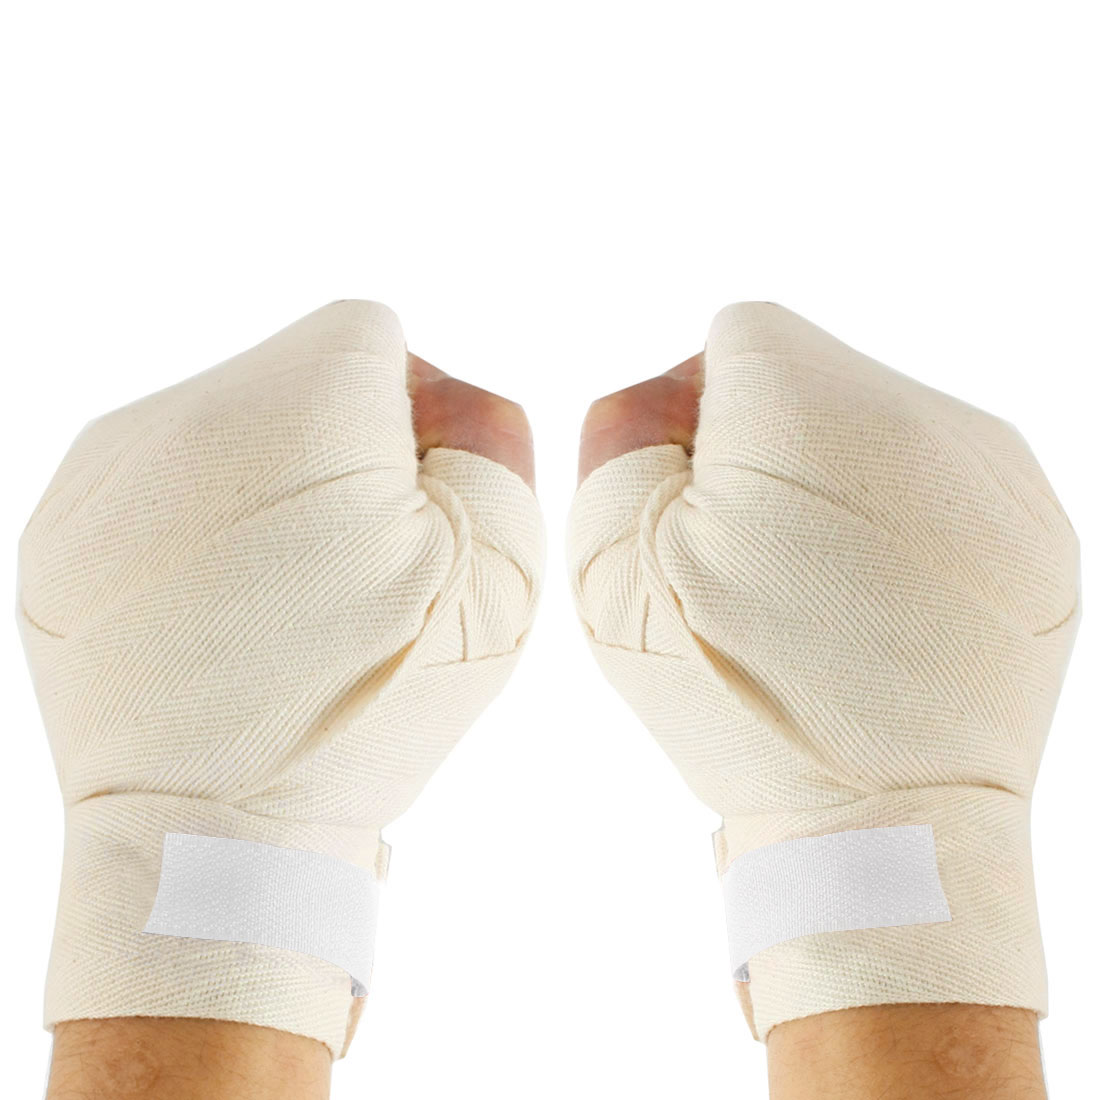 Hook Loop Closure Off-White Boxing Hand Supporter Wraps Bandages Pair